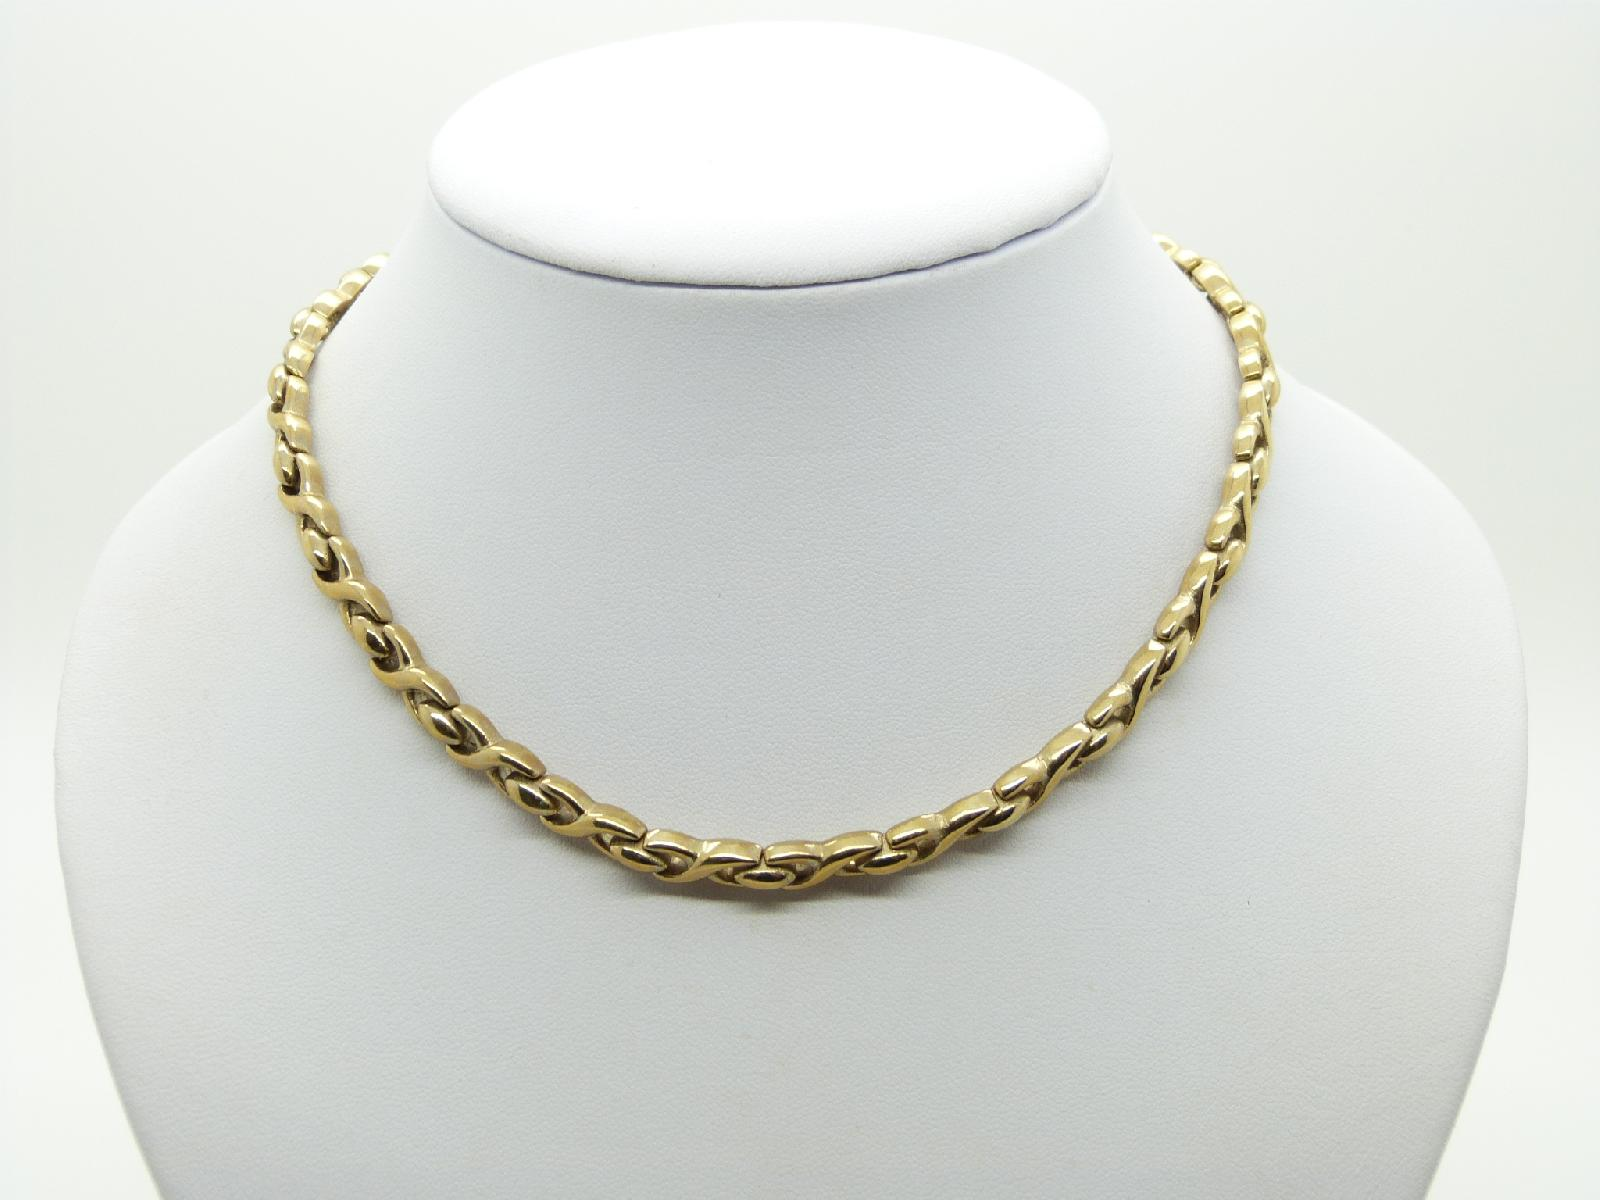 Gold Plated Stamped M&S Cross Link Style Choker Necklace 41cms